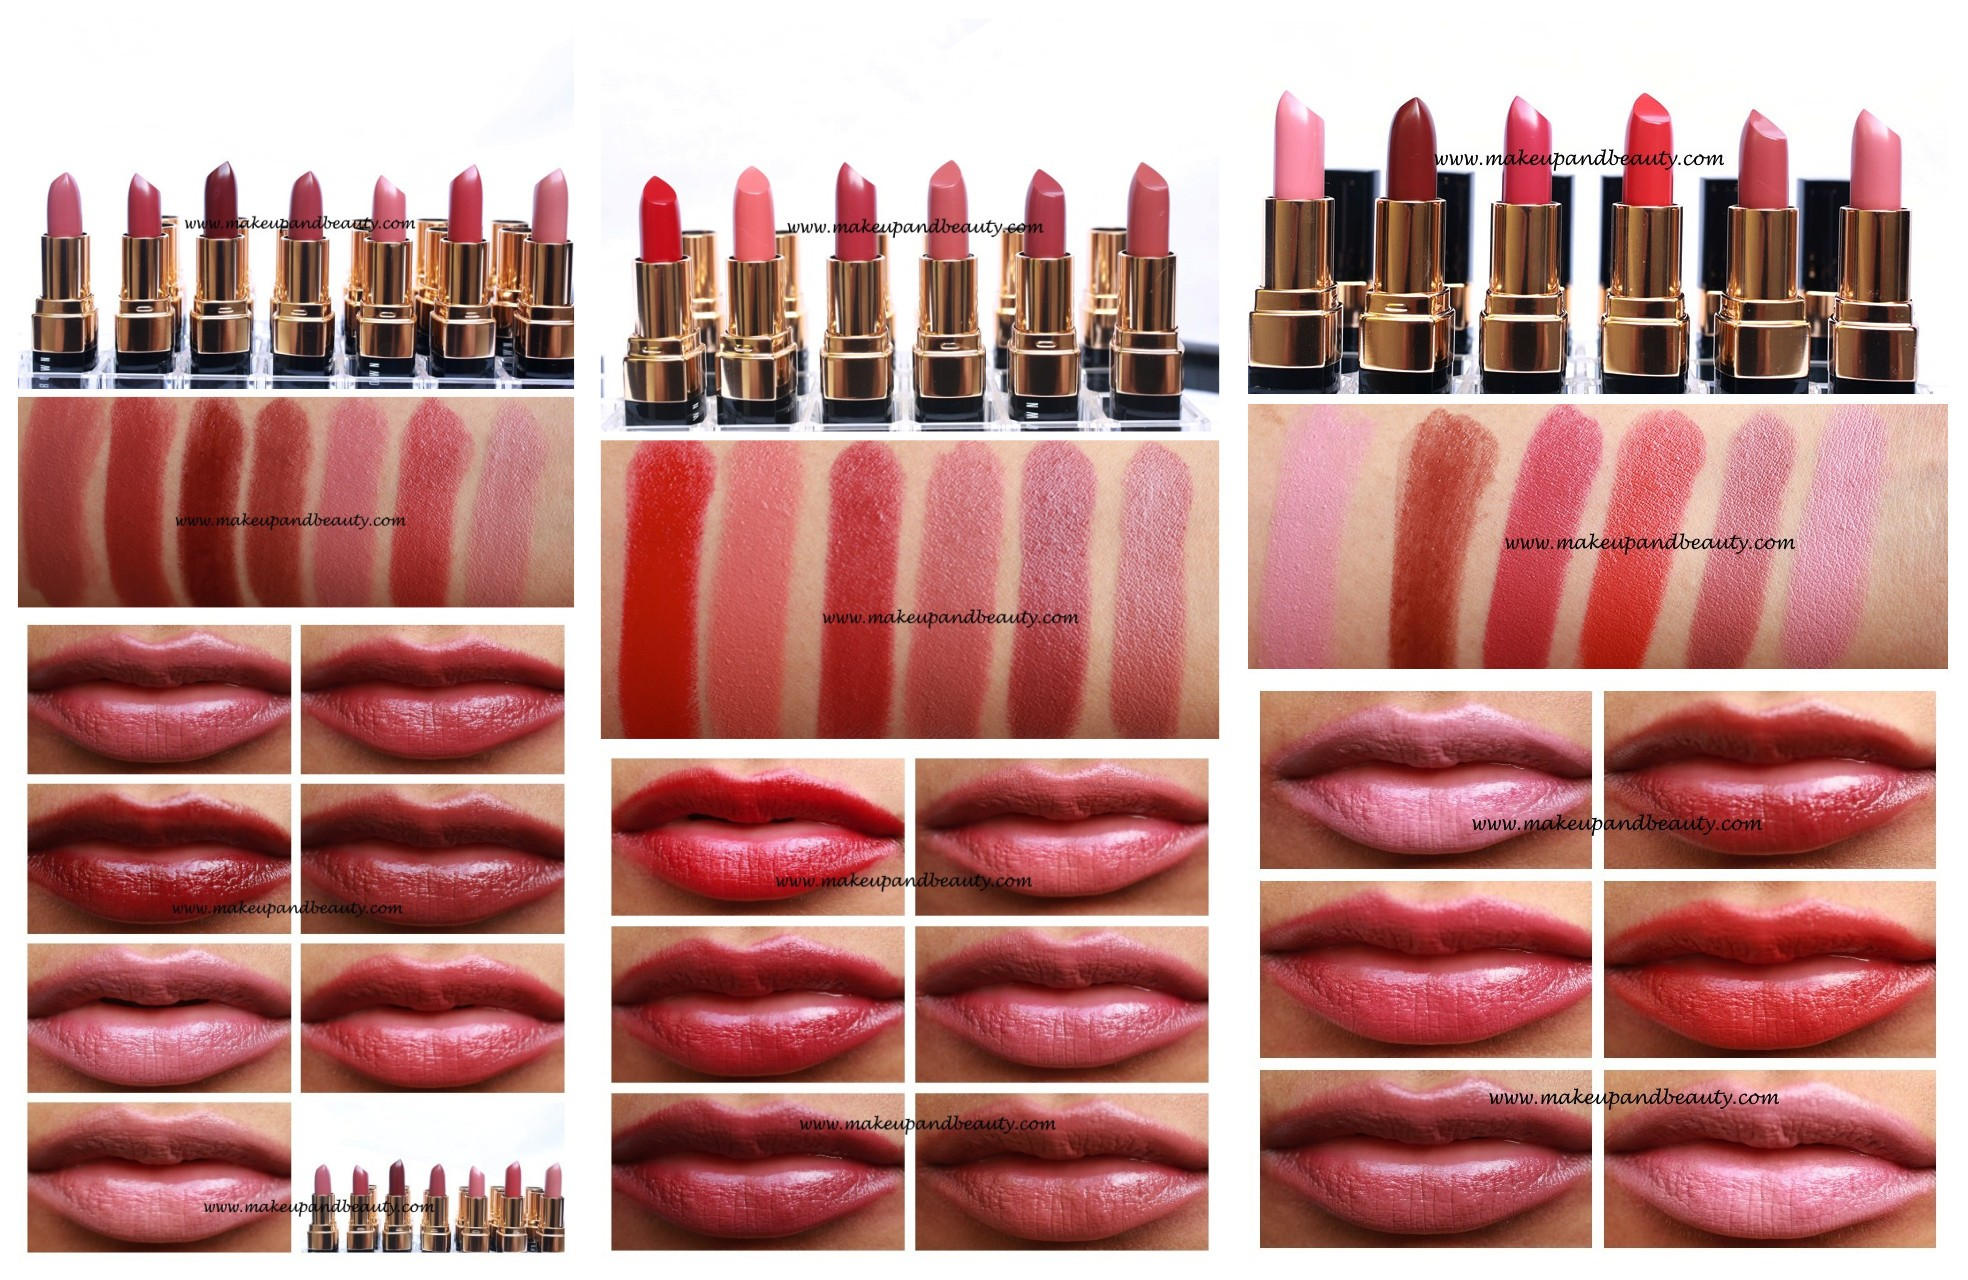 Bobbi Brown Old Hollywood Lipstick photos